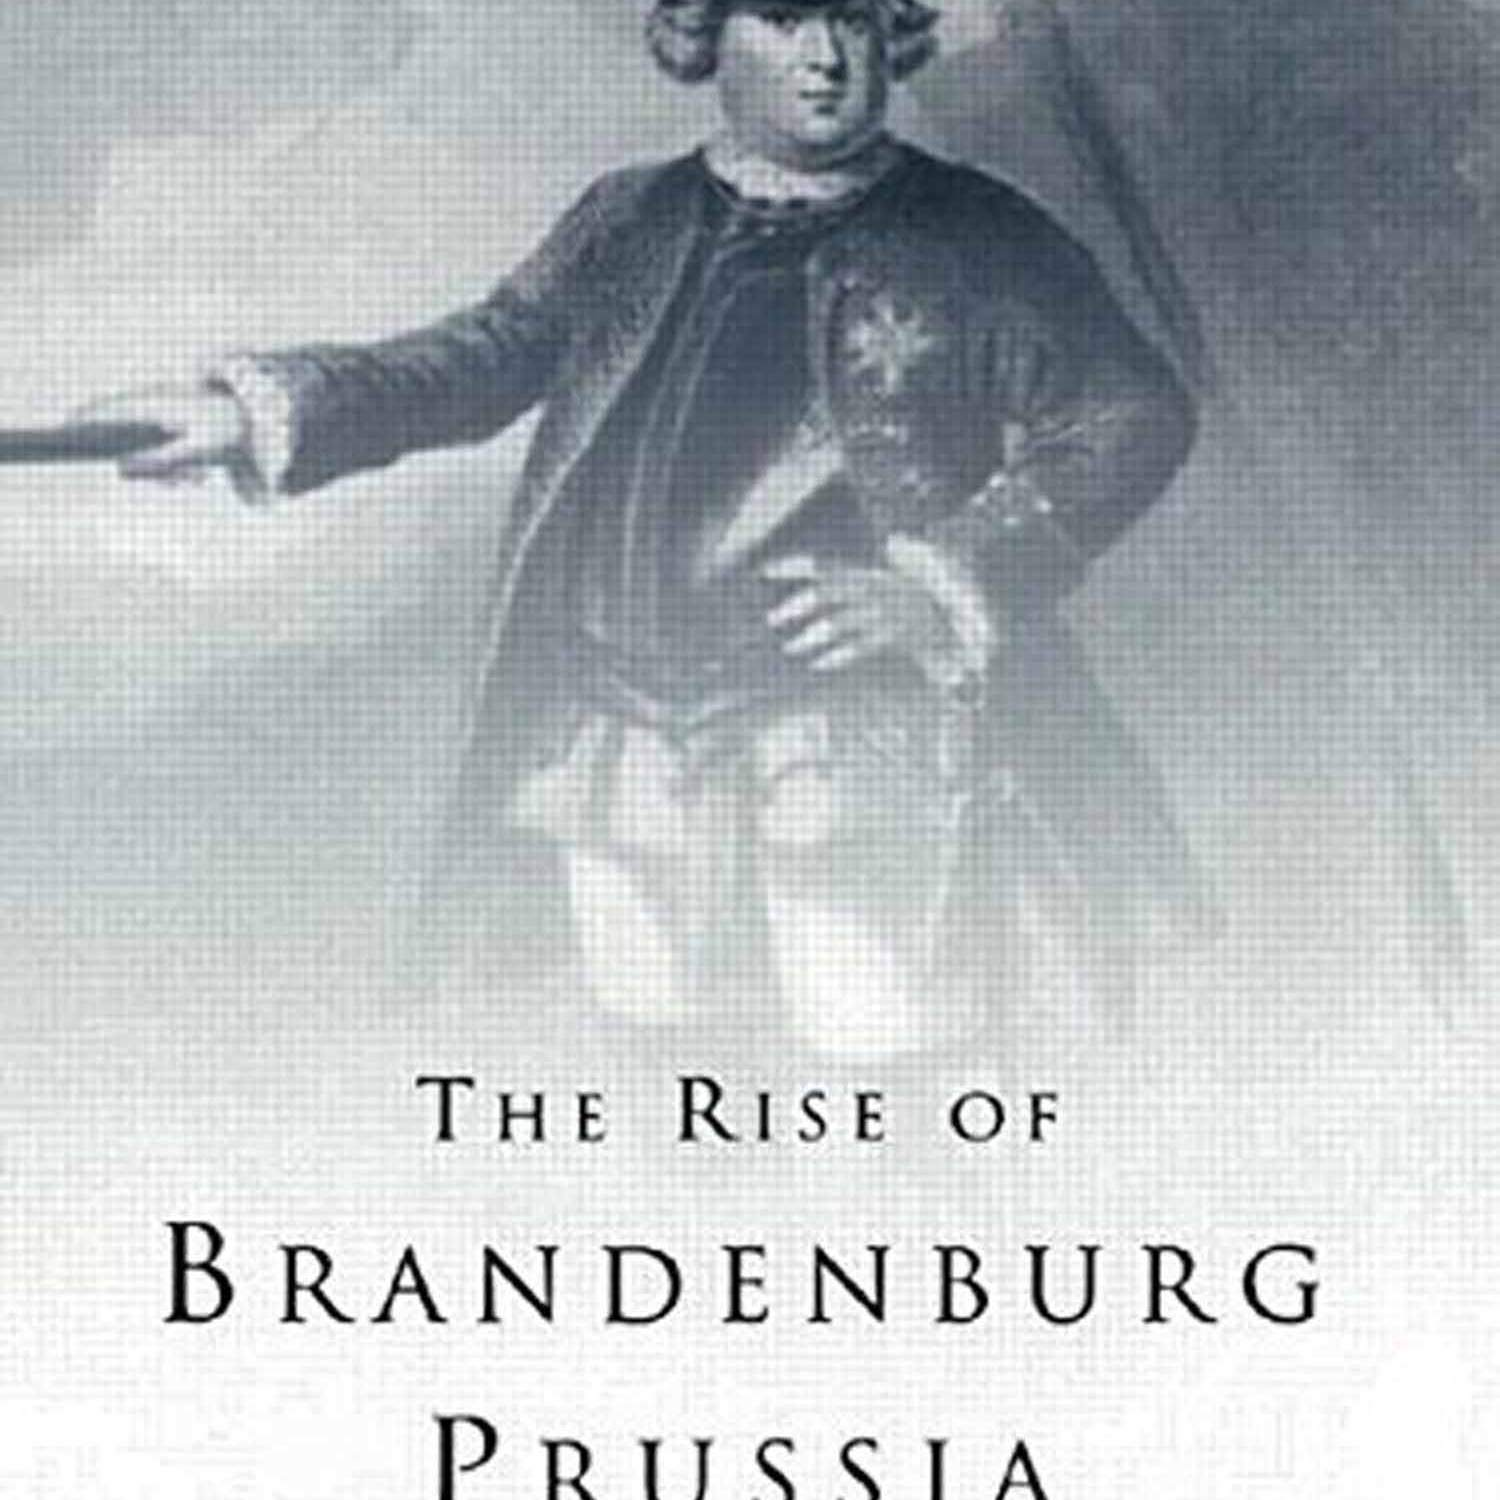 The Rise of Brandenburg-Prussia 1618 - 1740 by Margaret Shennan